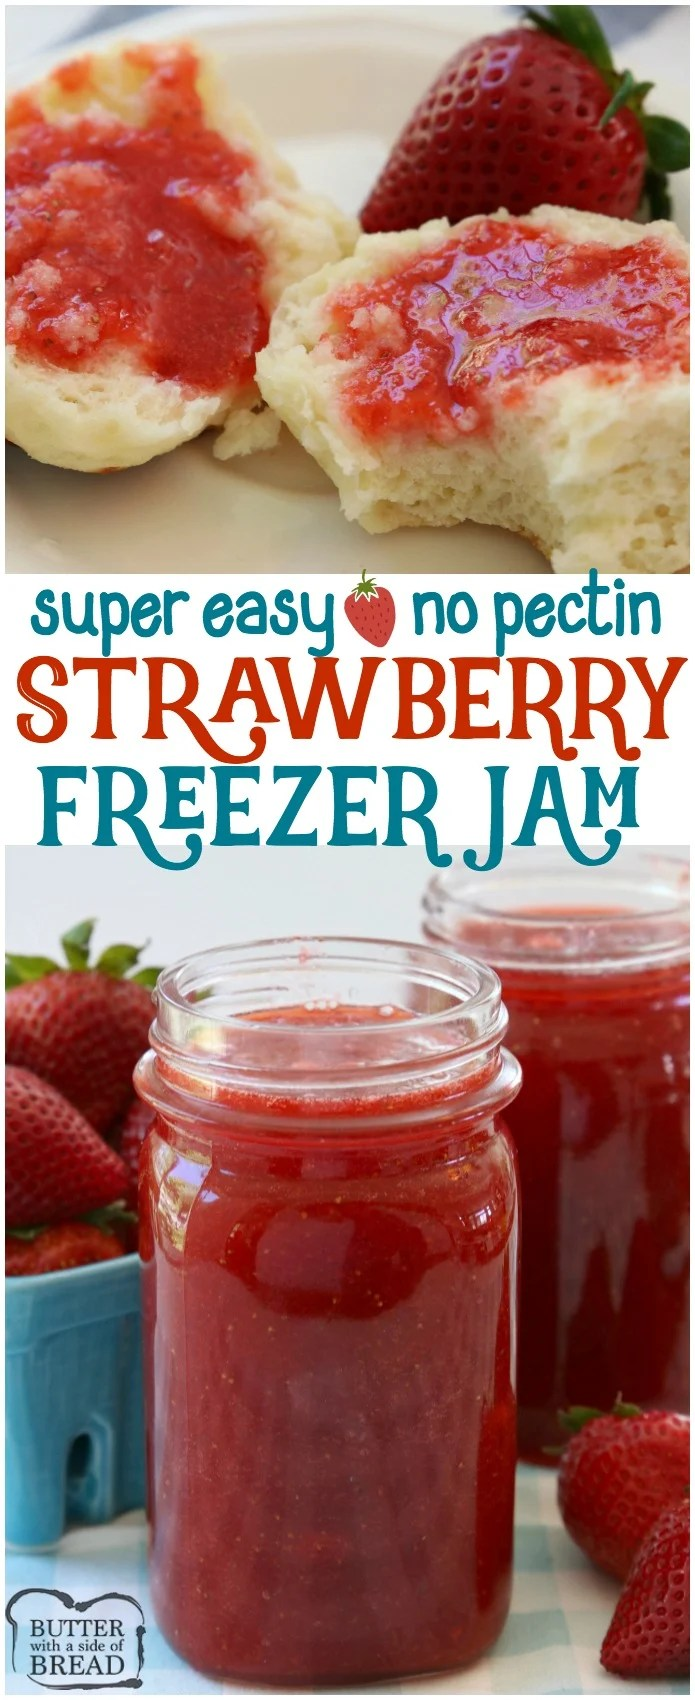 Homemade Strawberry Jam made with just 3 ingredients and NO PECTIN. Making strawberry freezer jam has never been easier or more delicious!  #strawberry #jam #freezerjam #nopectin #strawberries #homemade #delicious #yum #recipe from BUTTER WITH A SIDE OF BREAD